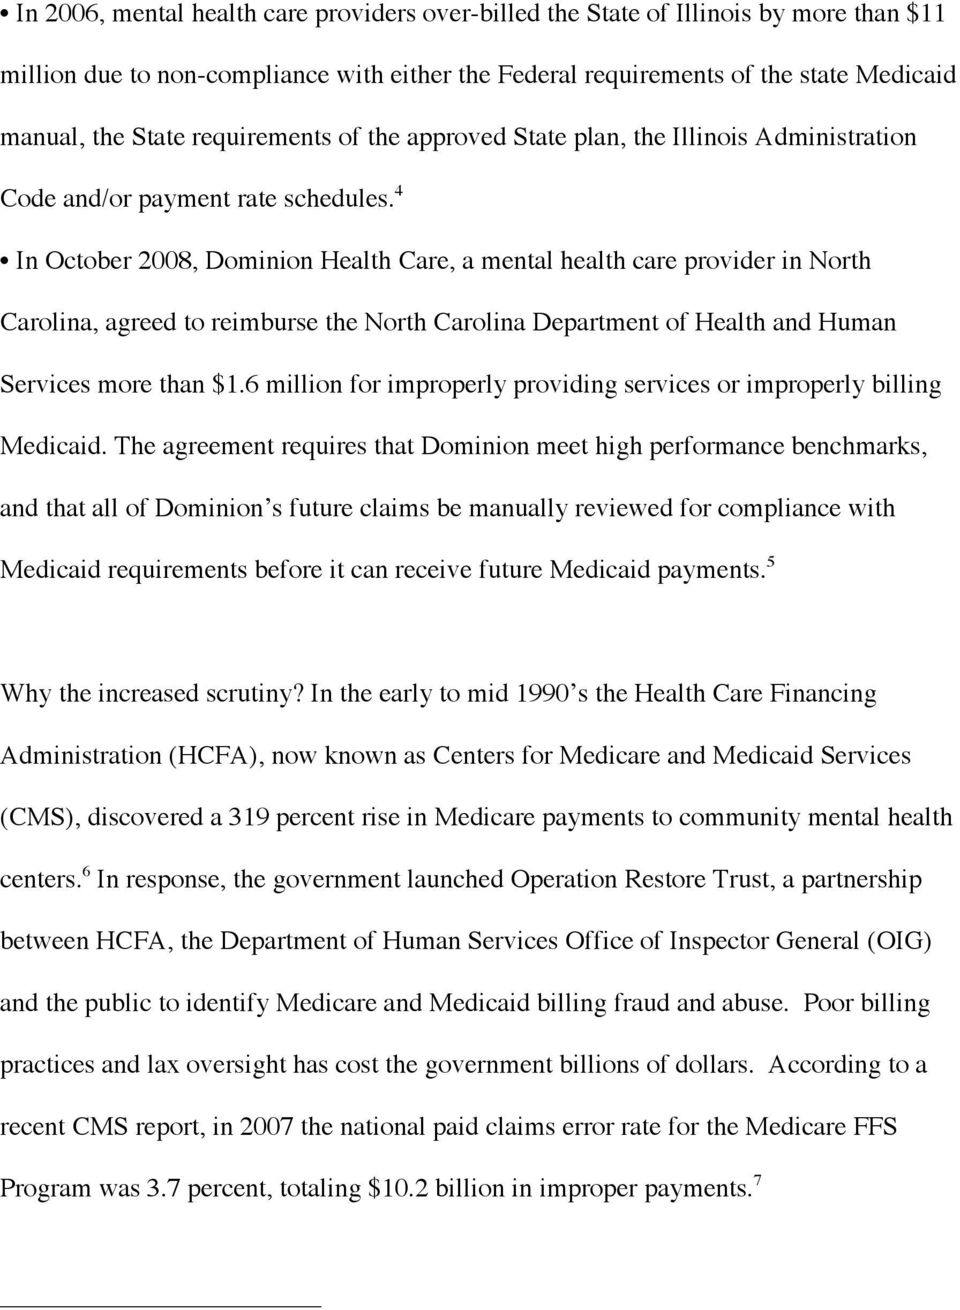 4 In October 2008, Dominion Health Care, a mental health care provider in North Carolina, agreed to reimburse the North Carolina Department of Health and Human Services more than $1.